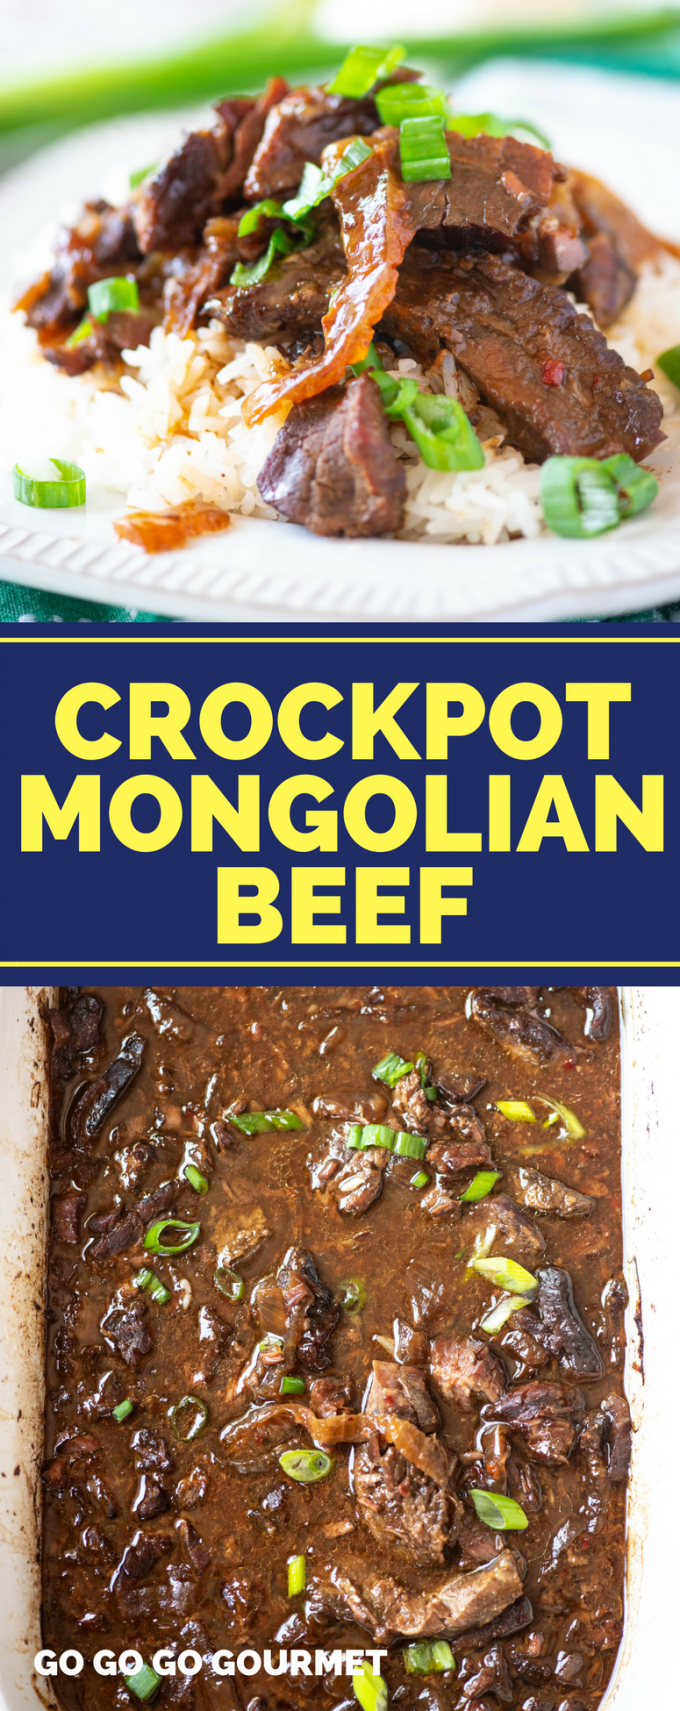 Bring your favorite dish from PF Changs into your kitchen! This easy recipe is way better than take out- PLUS, it's made in the crockpot!